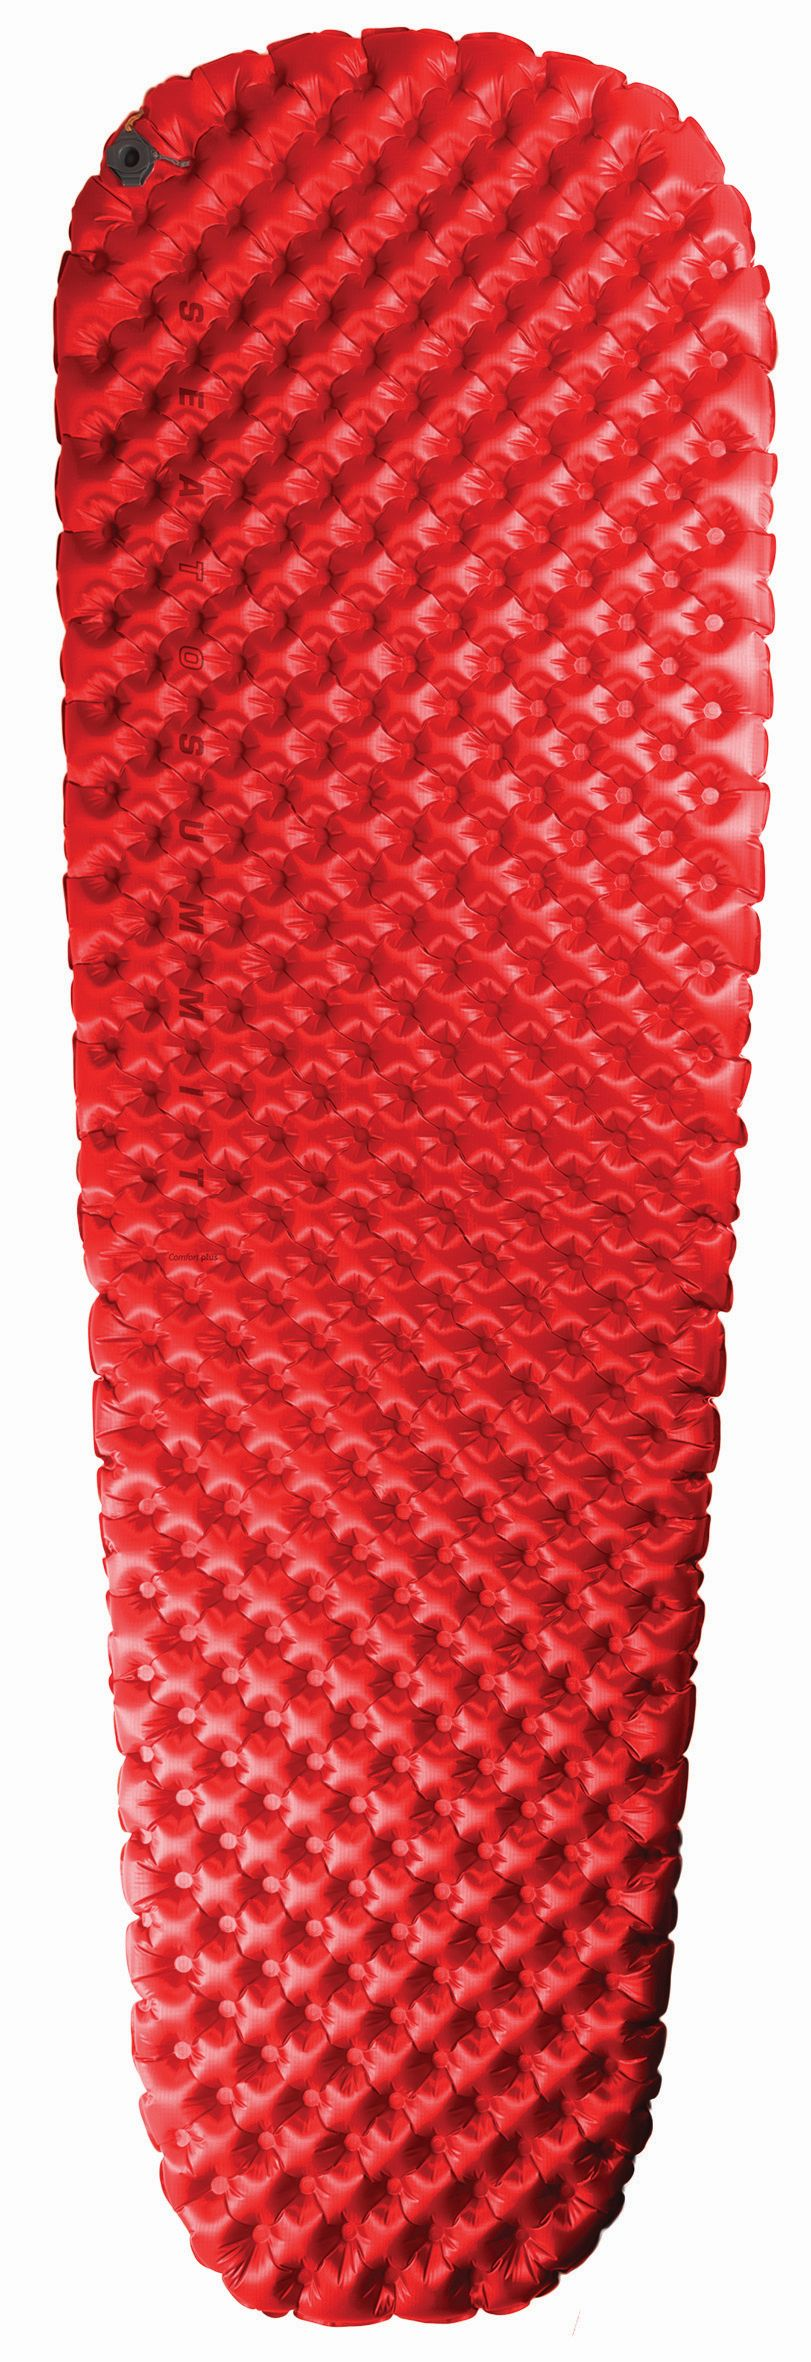 Sea To Summit Comfort Plus Insul Mat Large Red-30